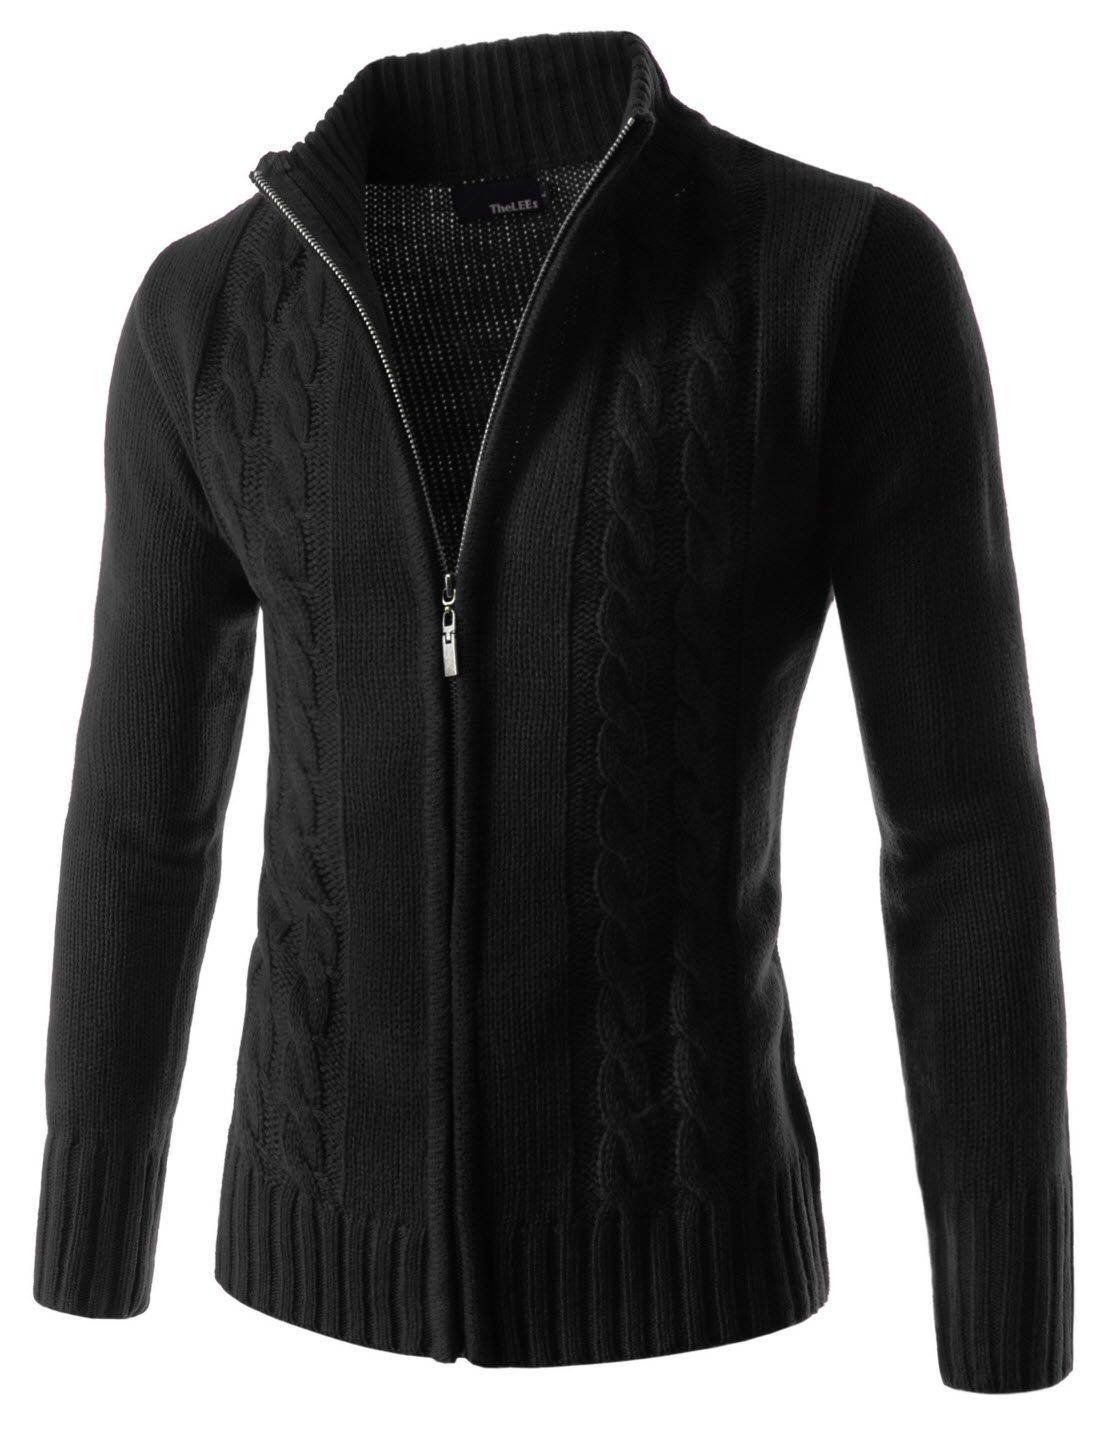 Twist Knitted Good Thermal Turtle Neck Zip Up Long Sleeve Cardigan Jacket e787f5c917